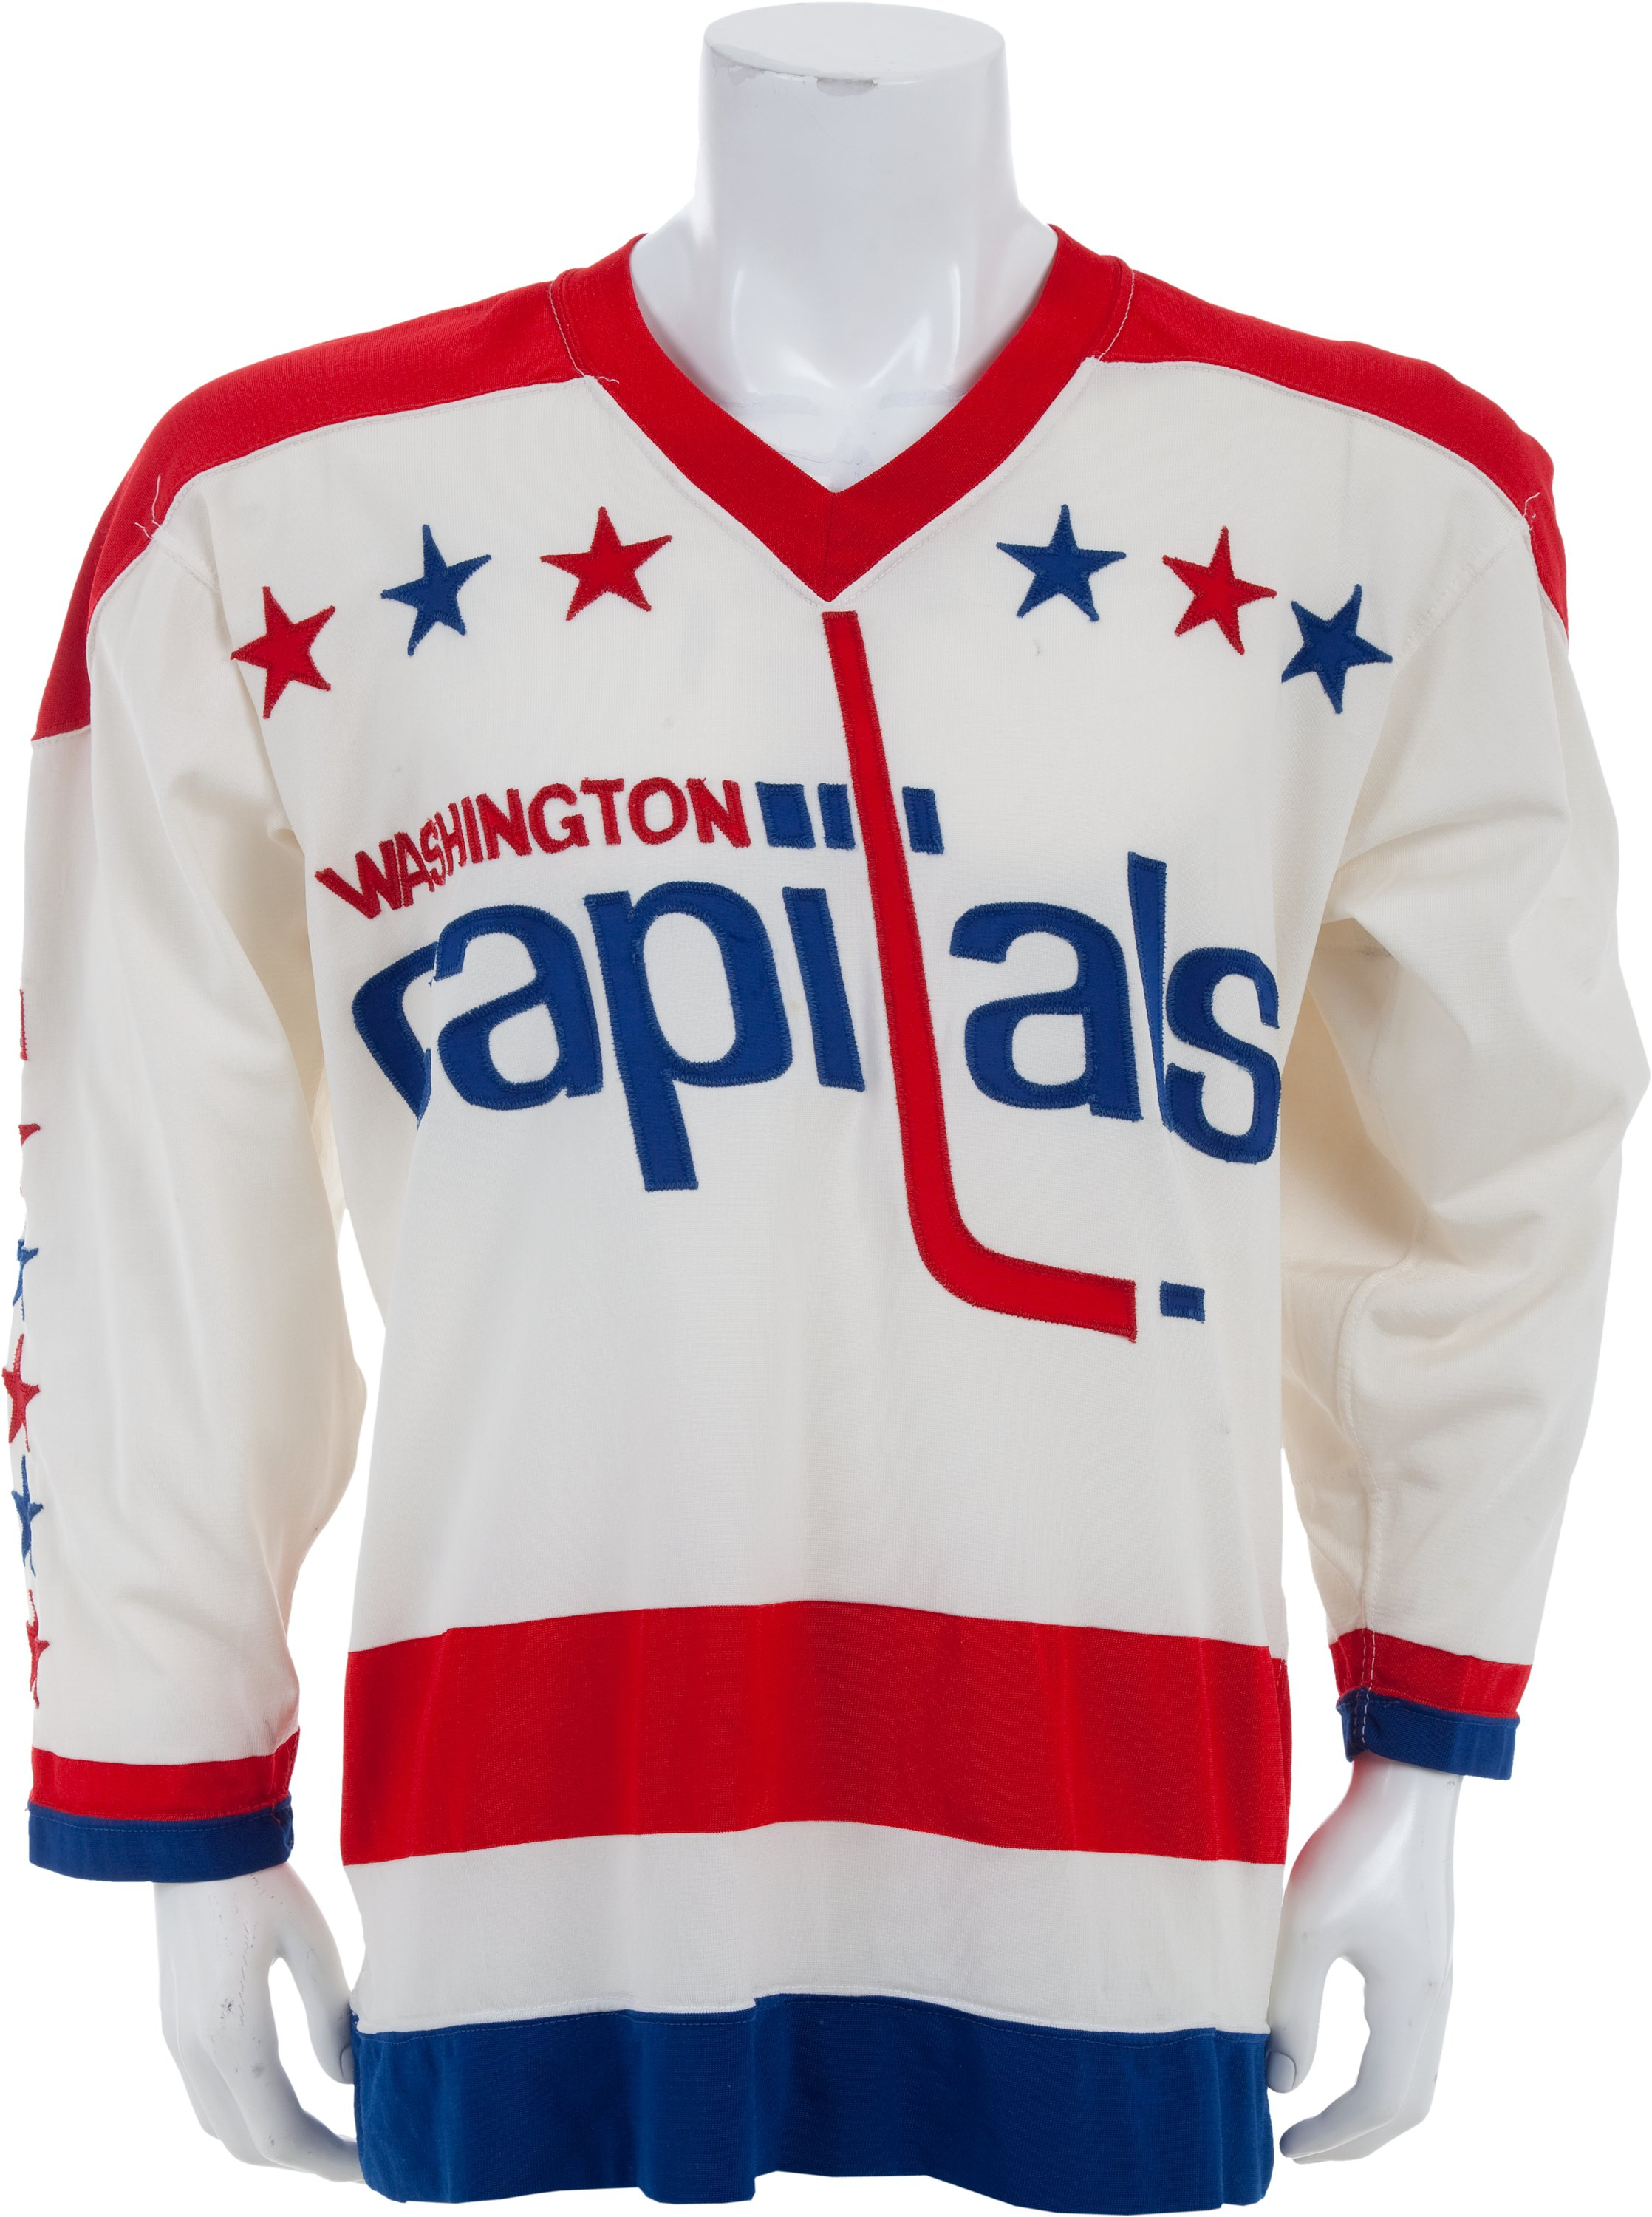 premium selection 38597 abf02 Mid 1970's Ron Low Game Issued Washington Capitals Jersey ...